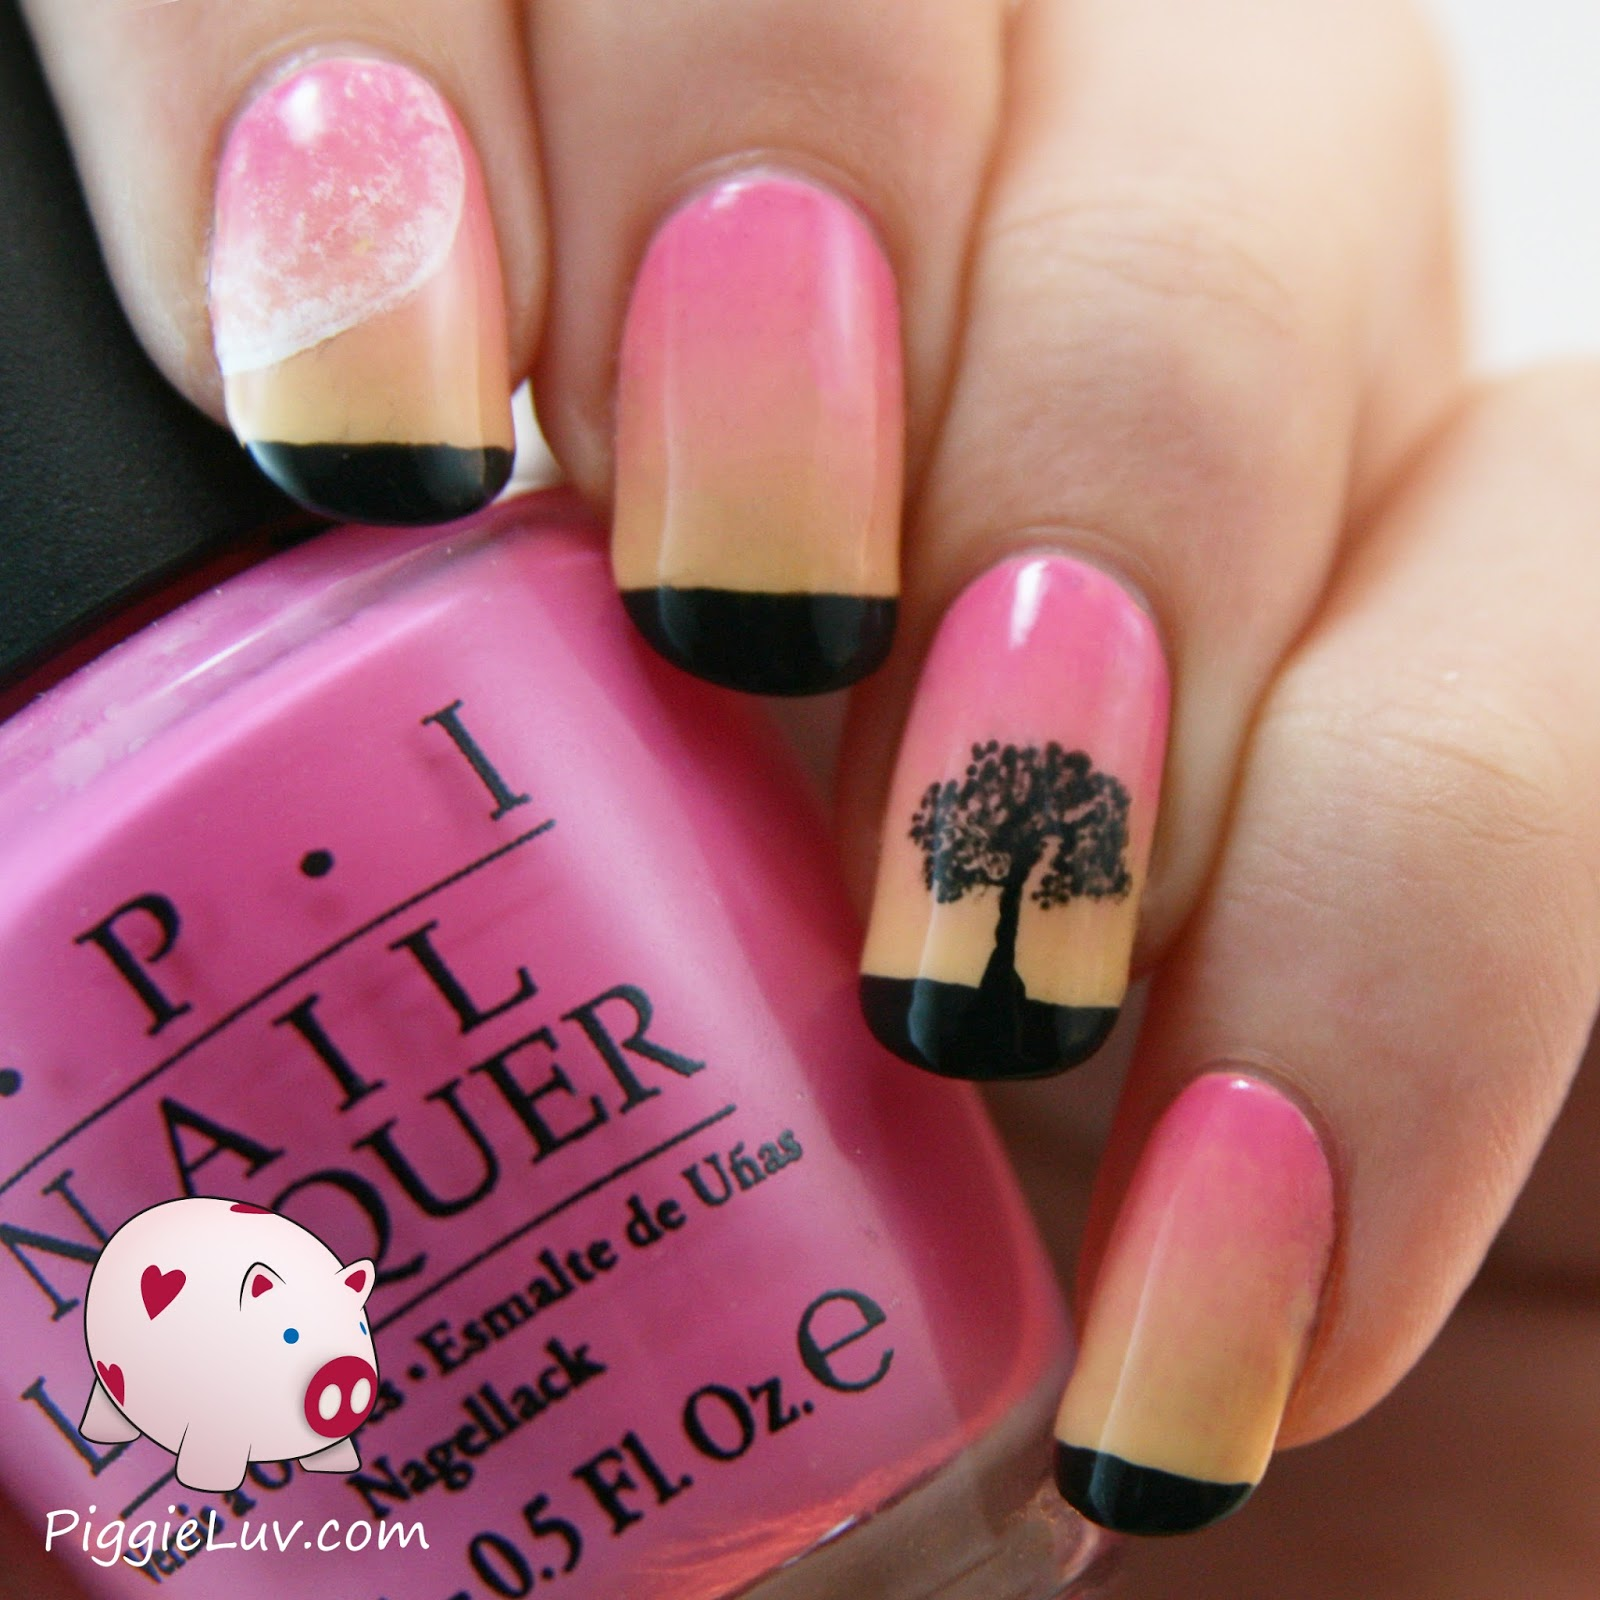 PiggieLuv: Soft sunset gradient nail art